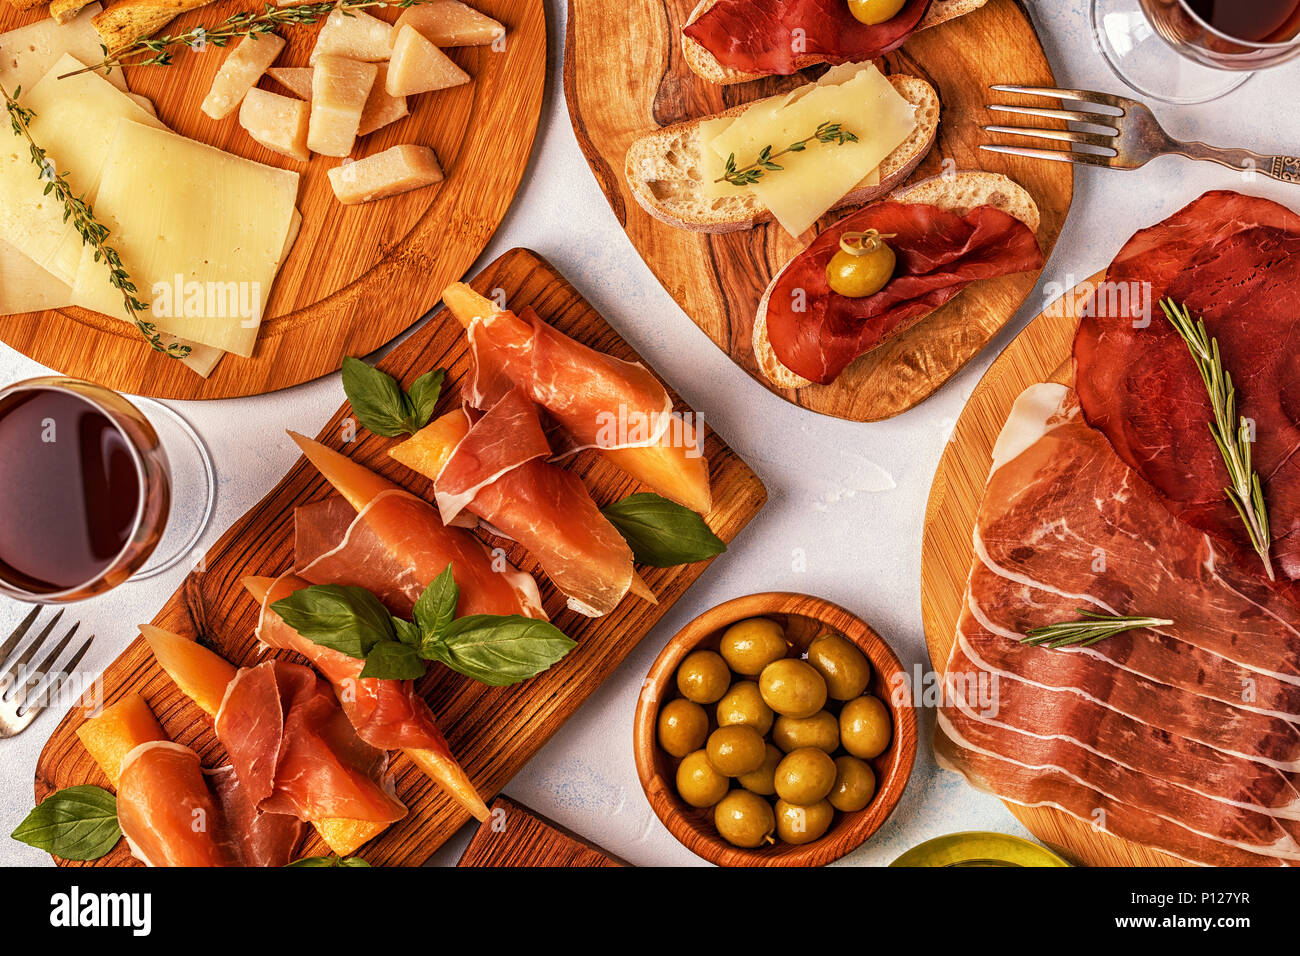 Italian food  background with ham, cheese, olives, bread, wine. - Stock Image